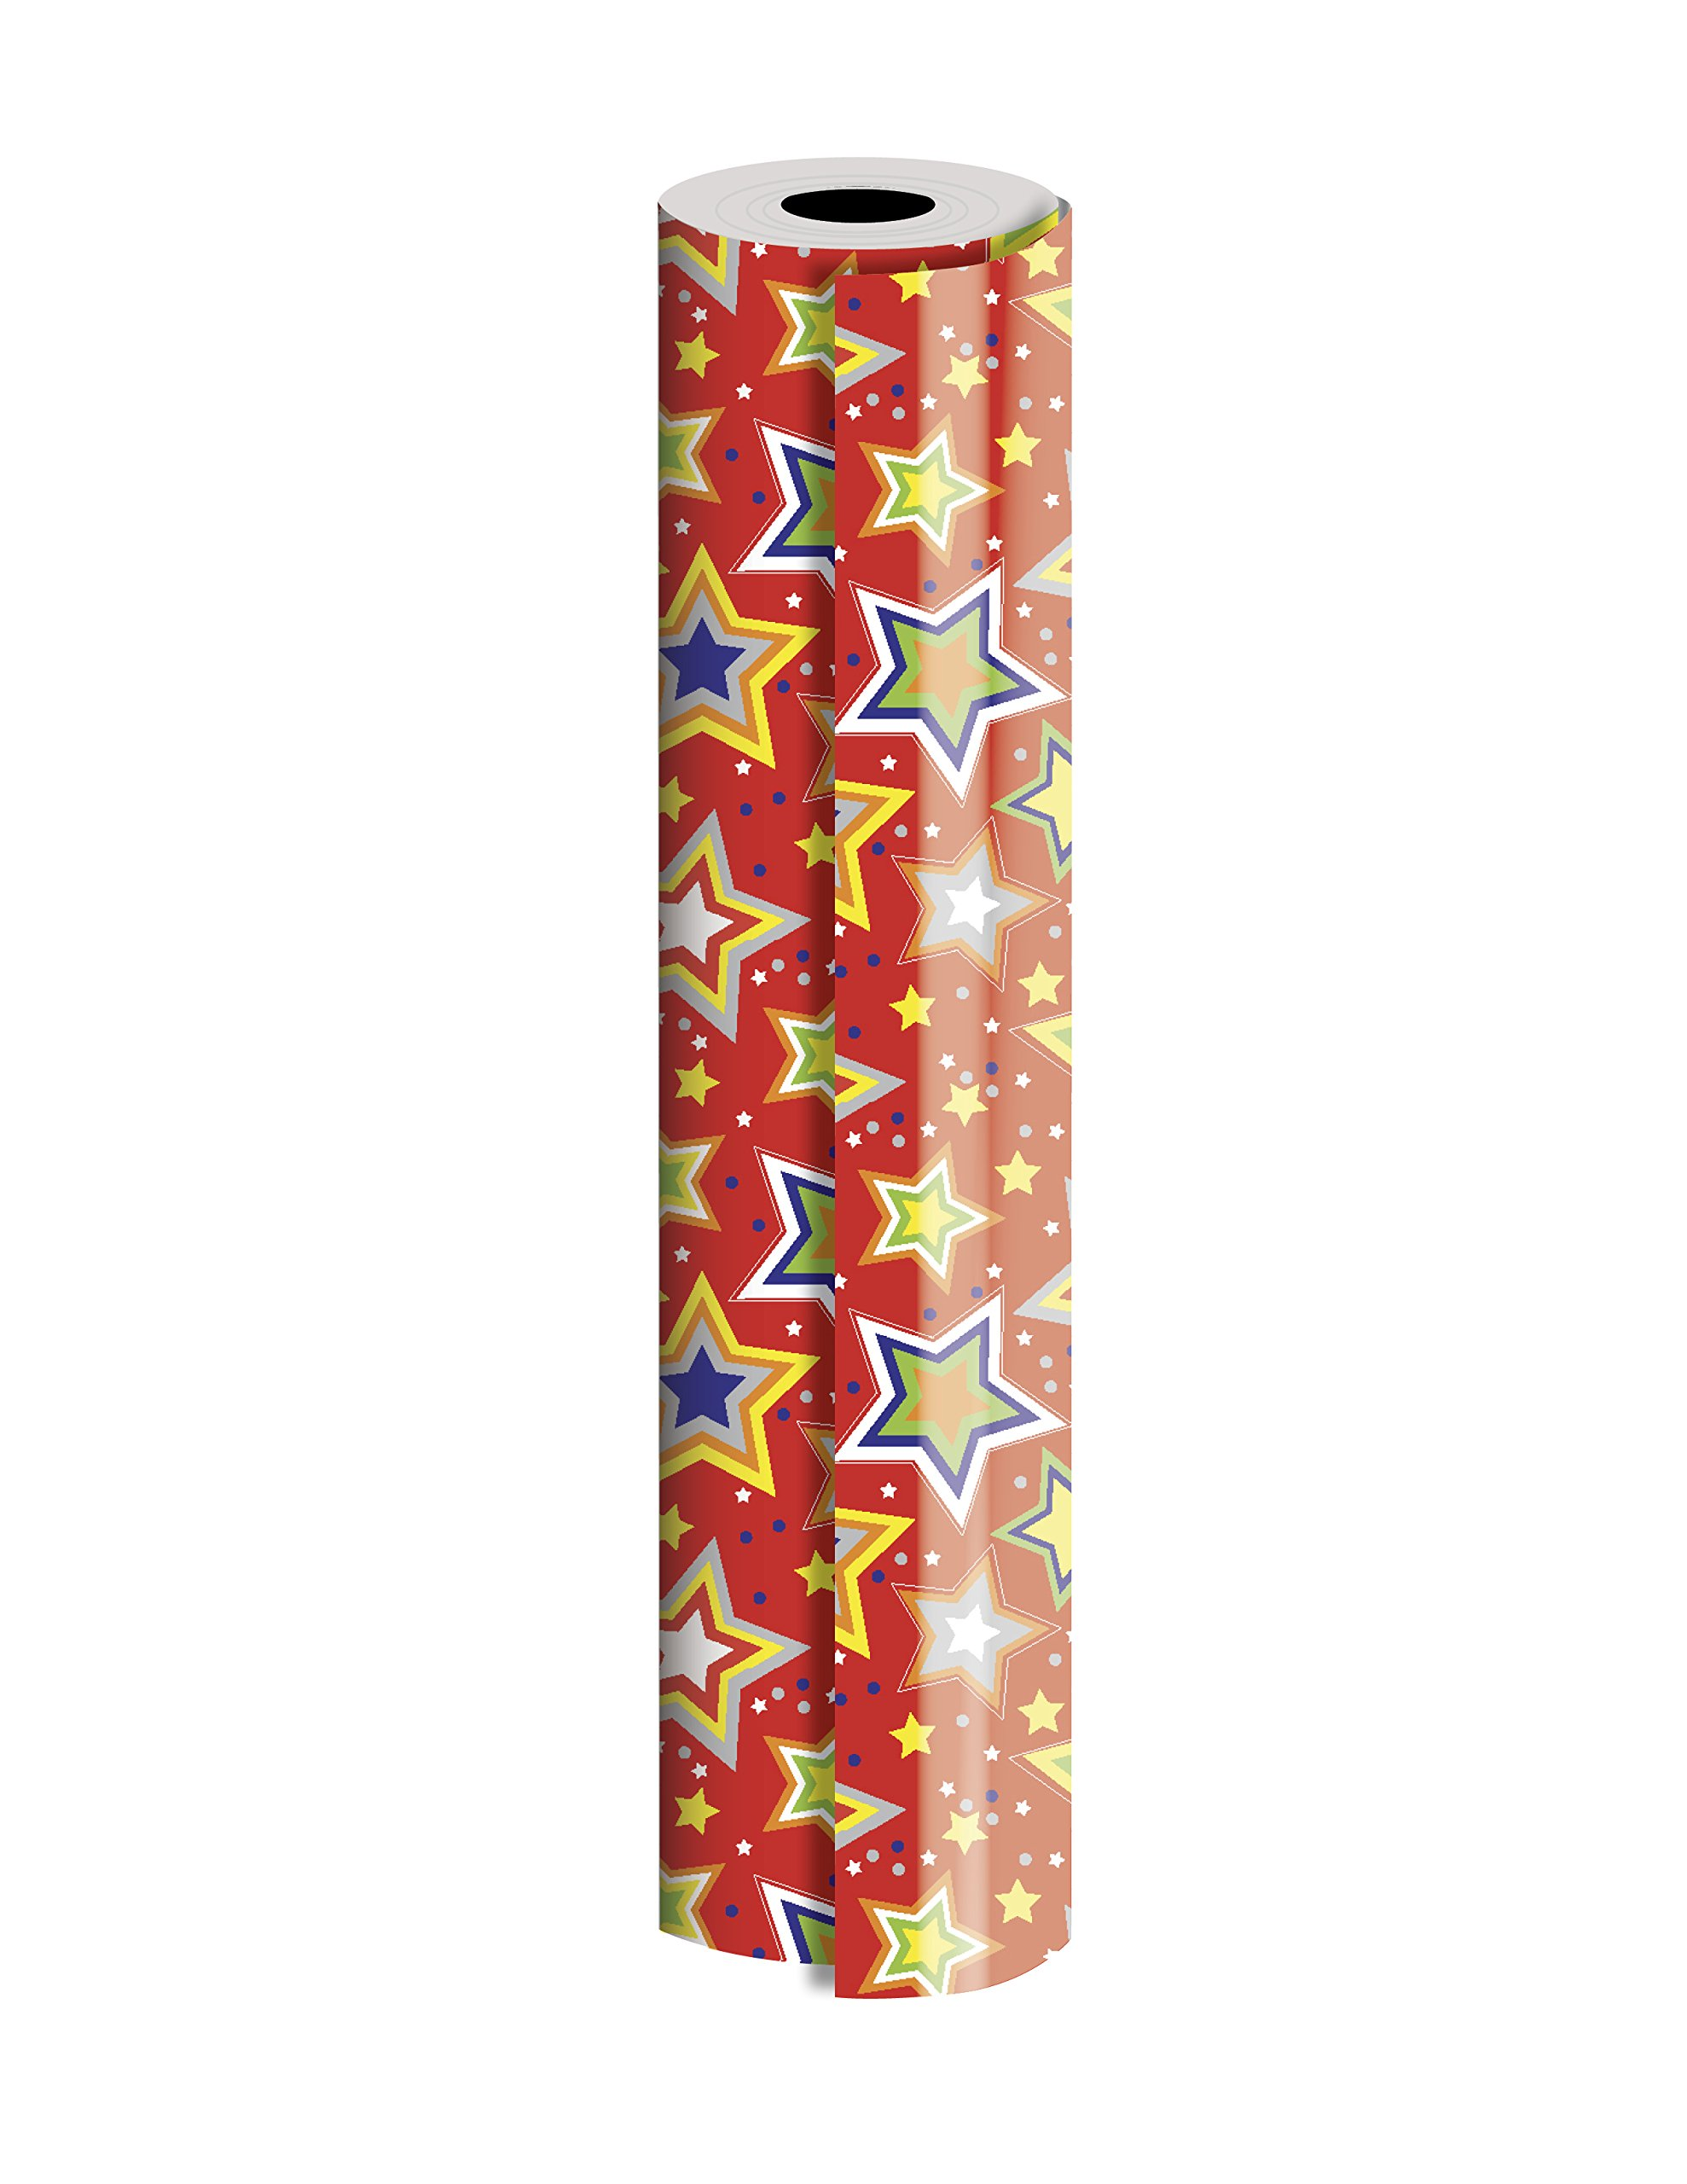 Jillson Roberts Bulk 1/4 Ream Gift Wrap Available in 14 Different Designs, 24'' x 208', Starry Red